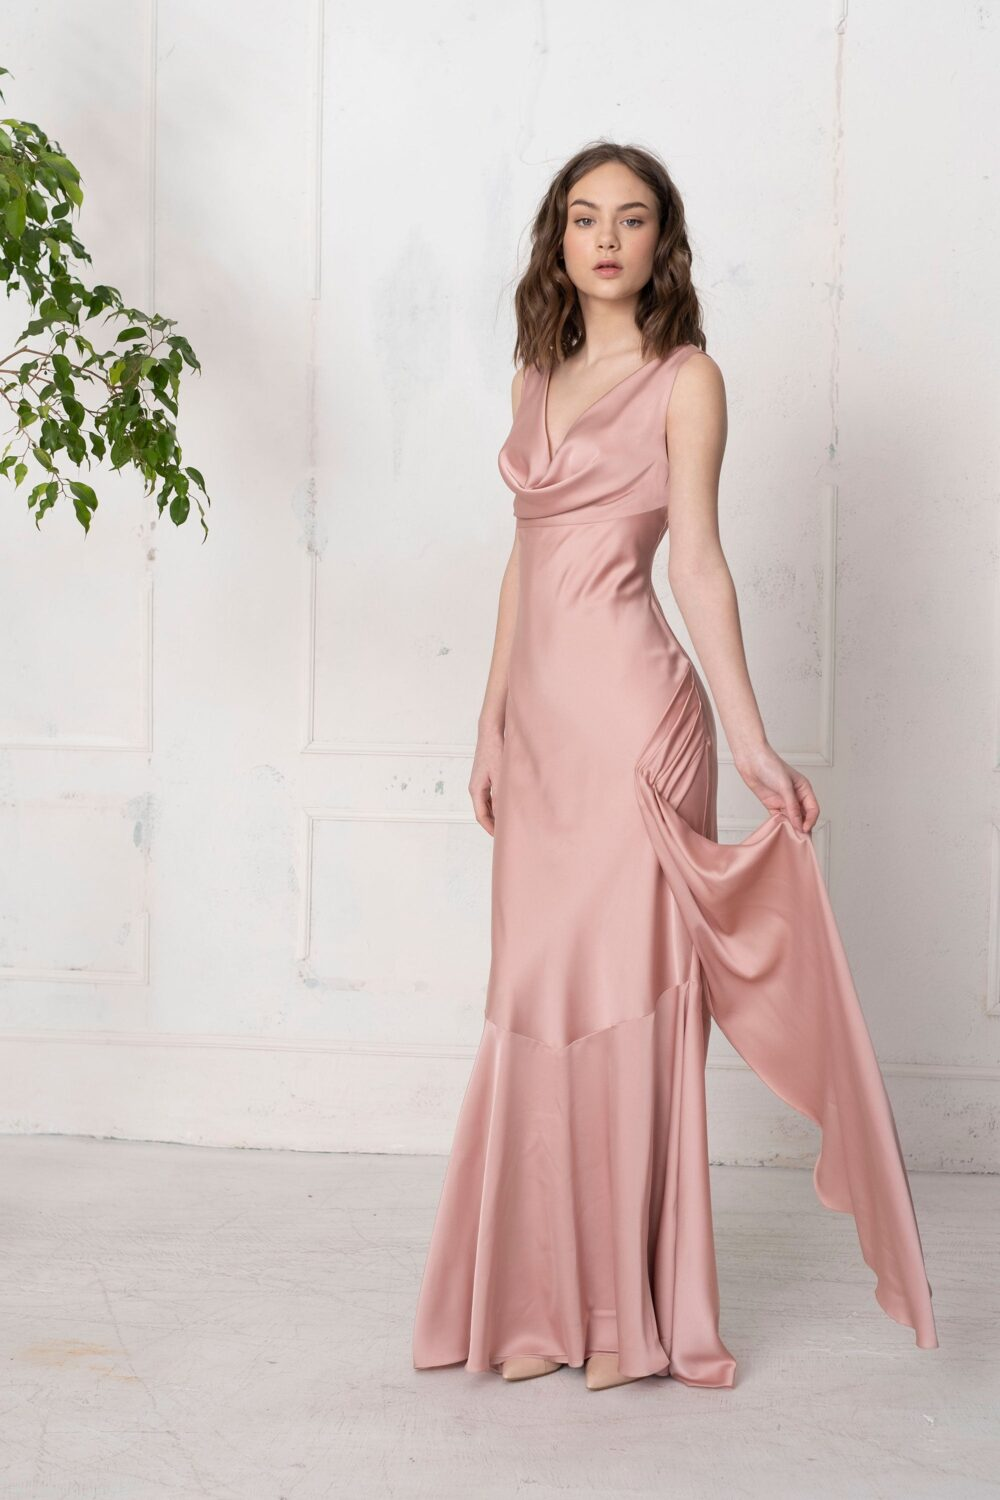 Bridesmaid Cocktail Prom Mother Of The Bride Simple Wedding Plus Size Dress Jenifer Pp3003.01